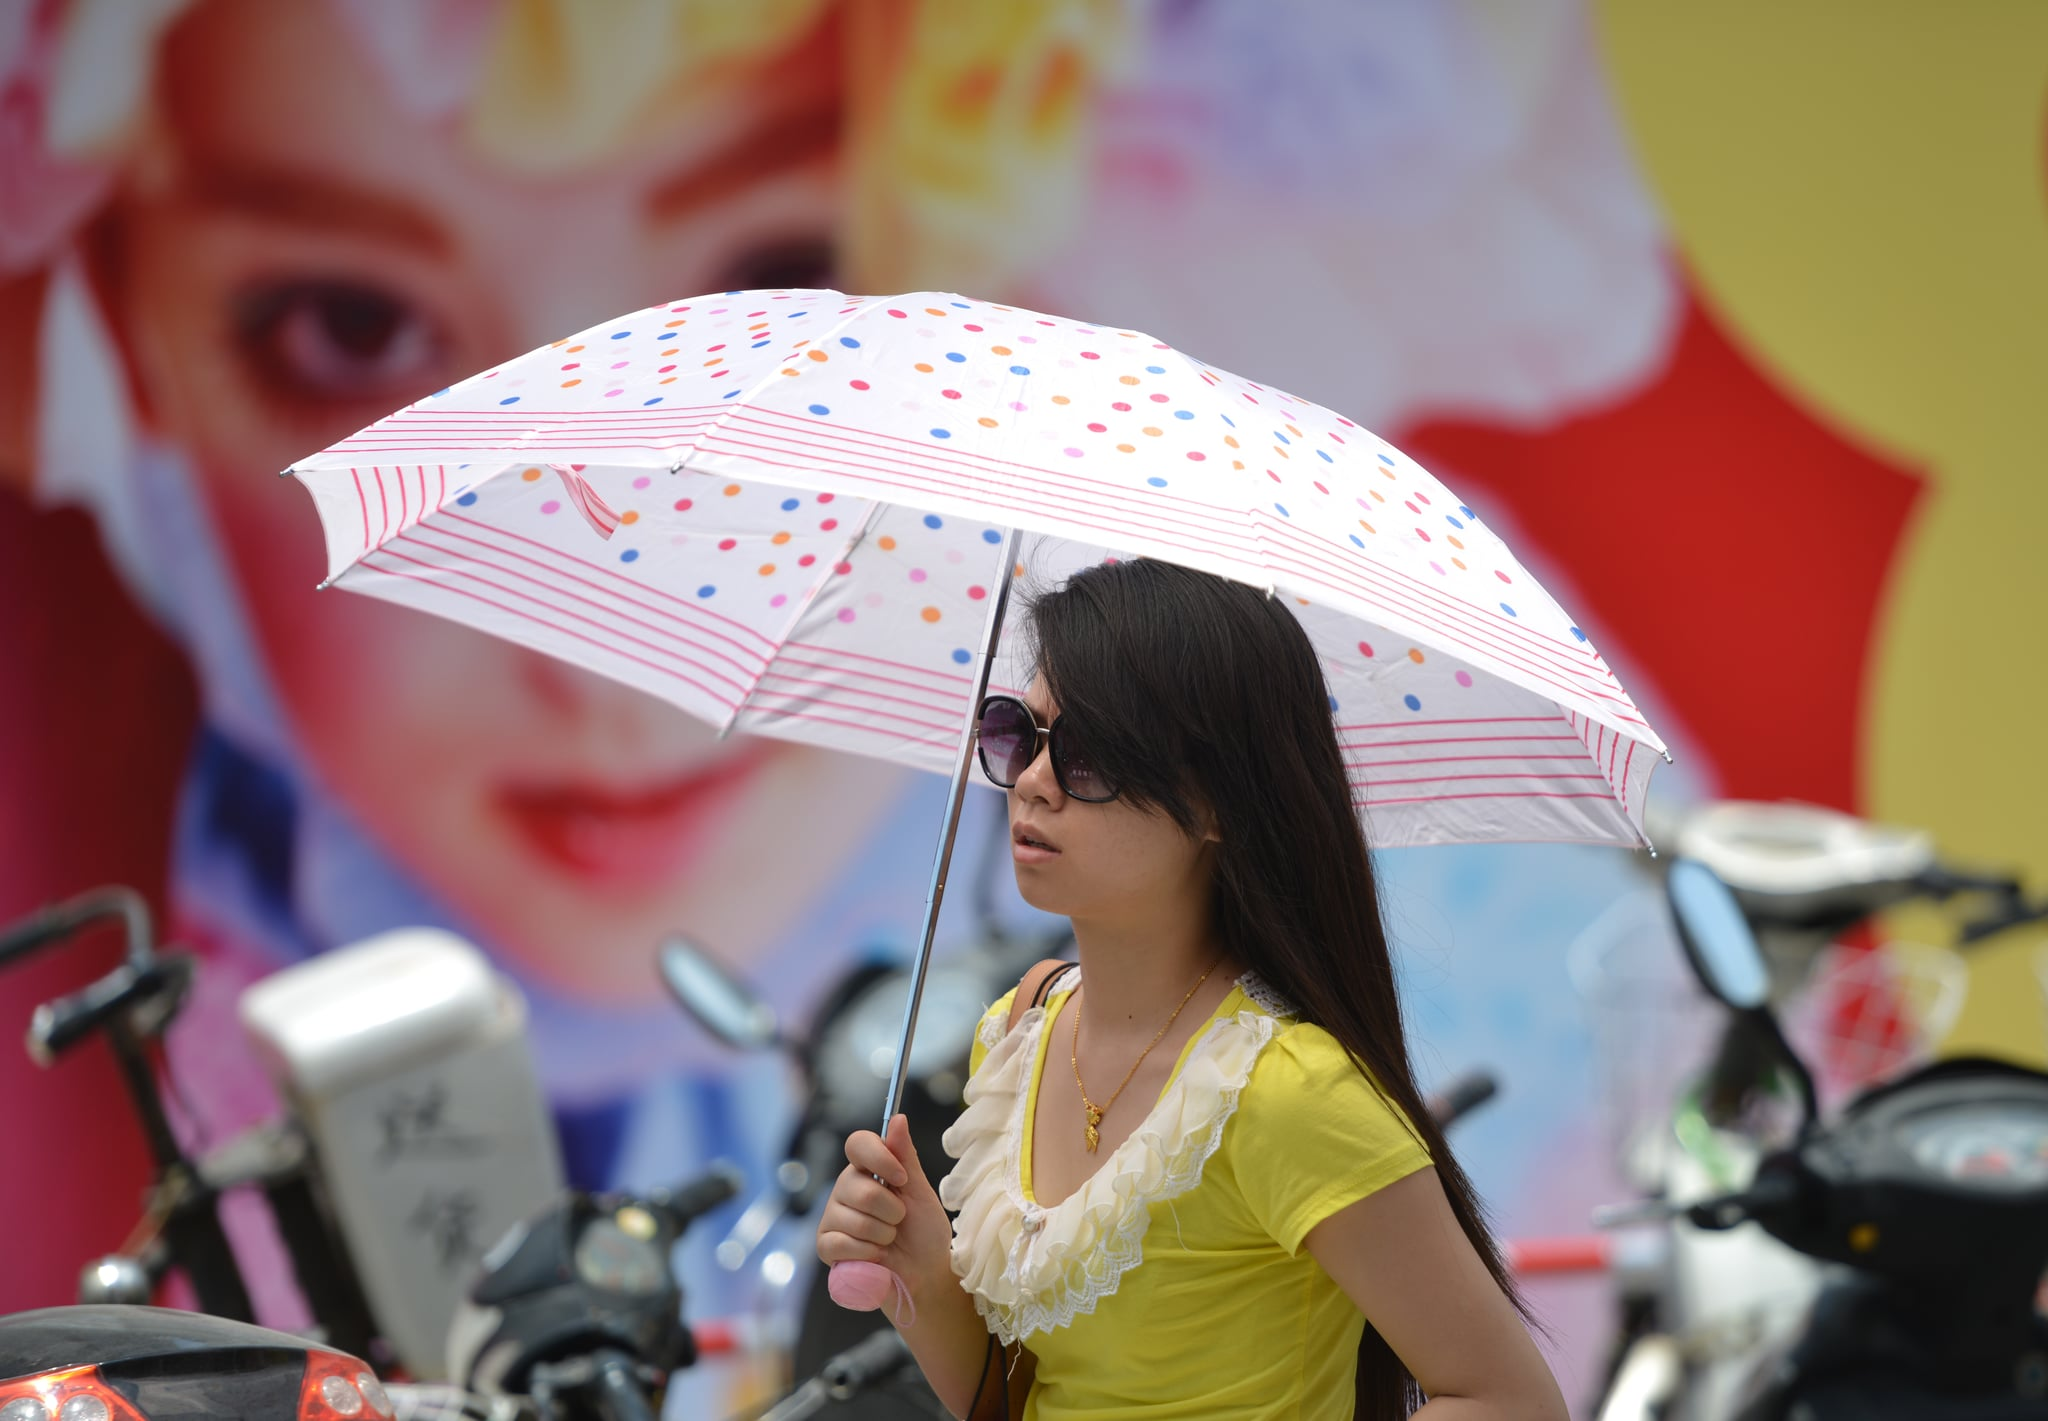 In Shanghai, a woman escaped the sun with the help of a parasol.